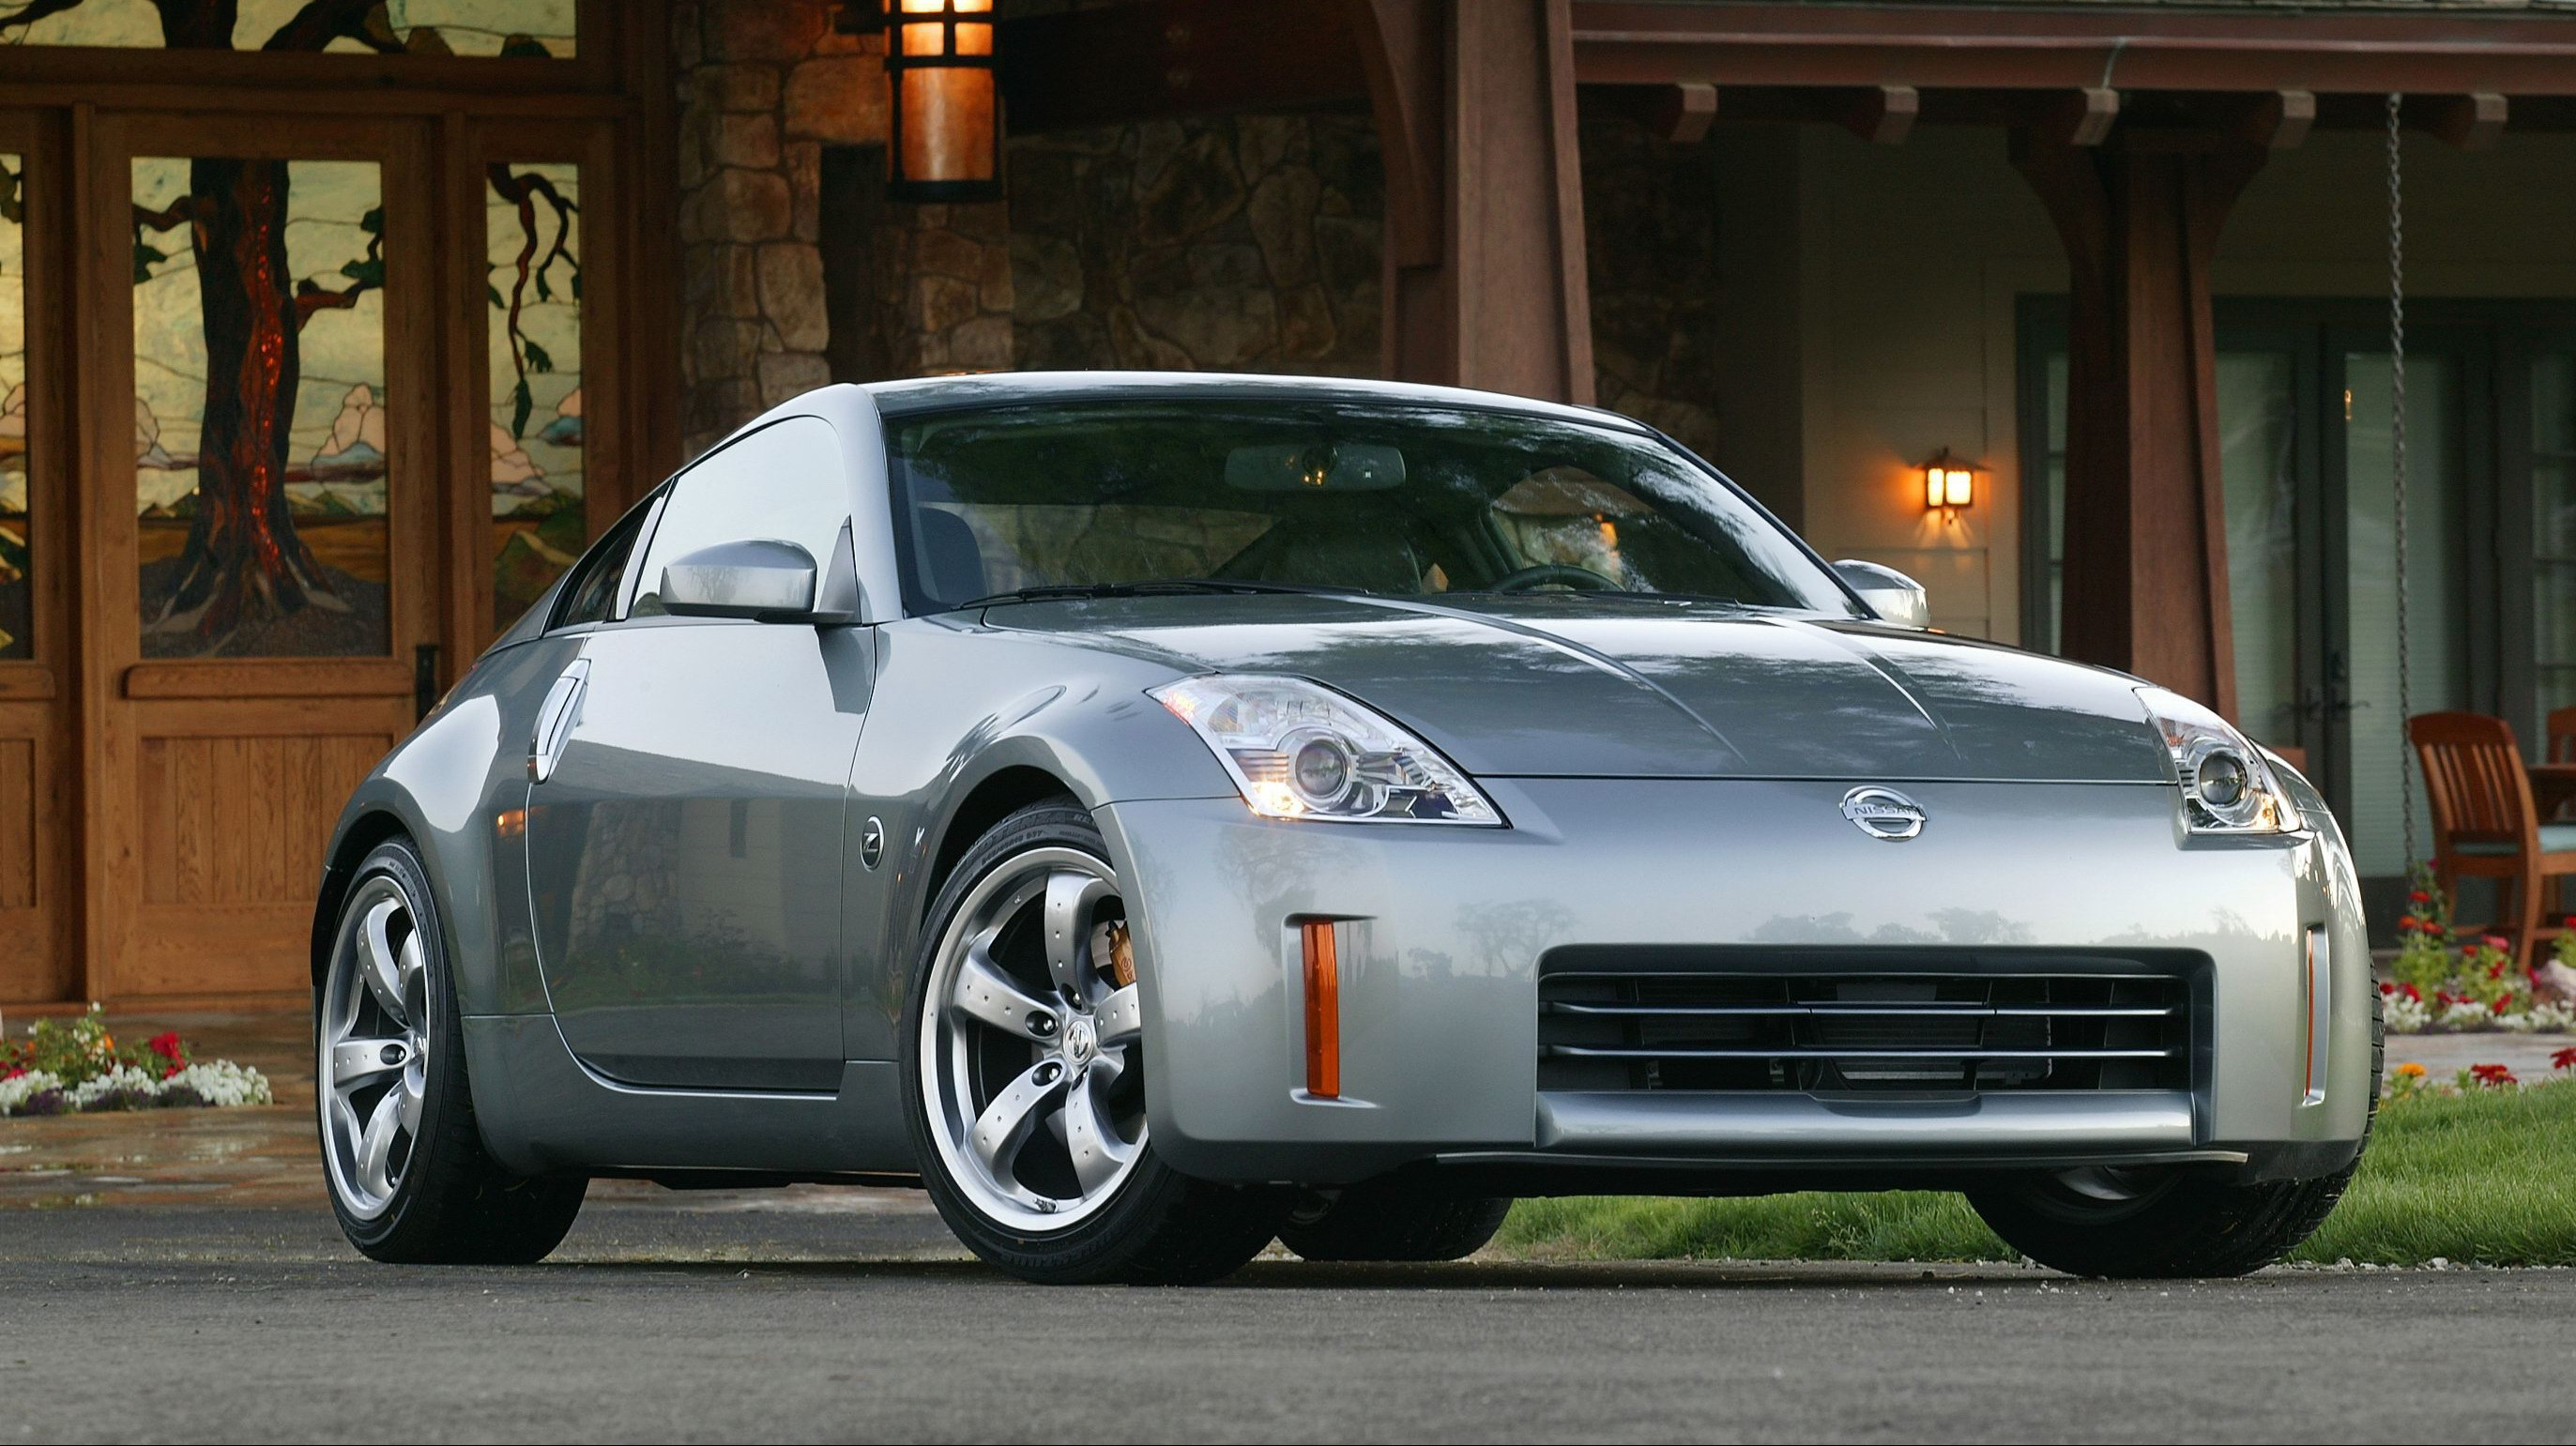 Nissan 350z Japanese Performance Car Of The Year For